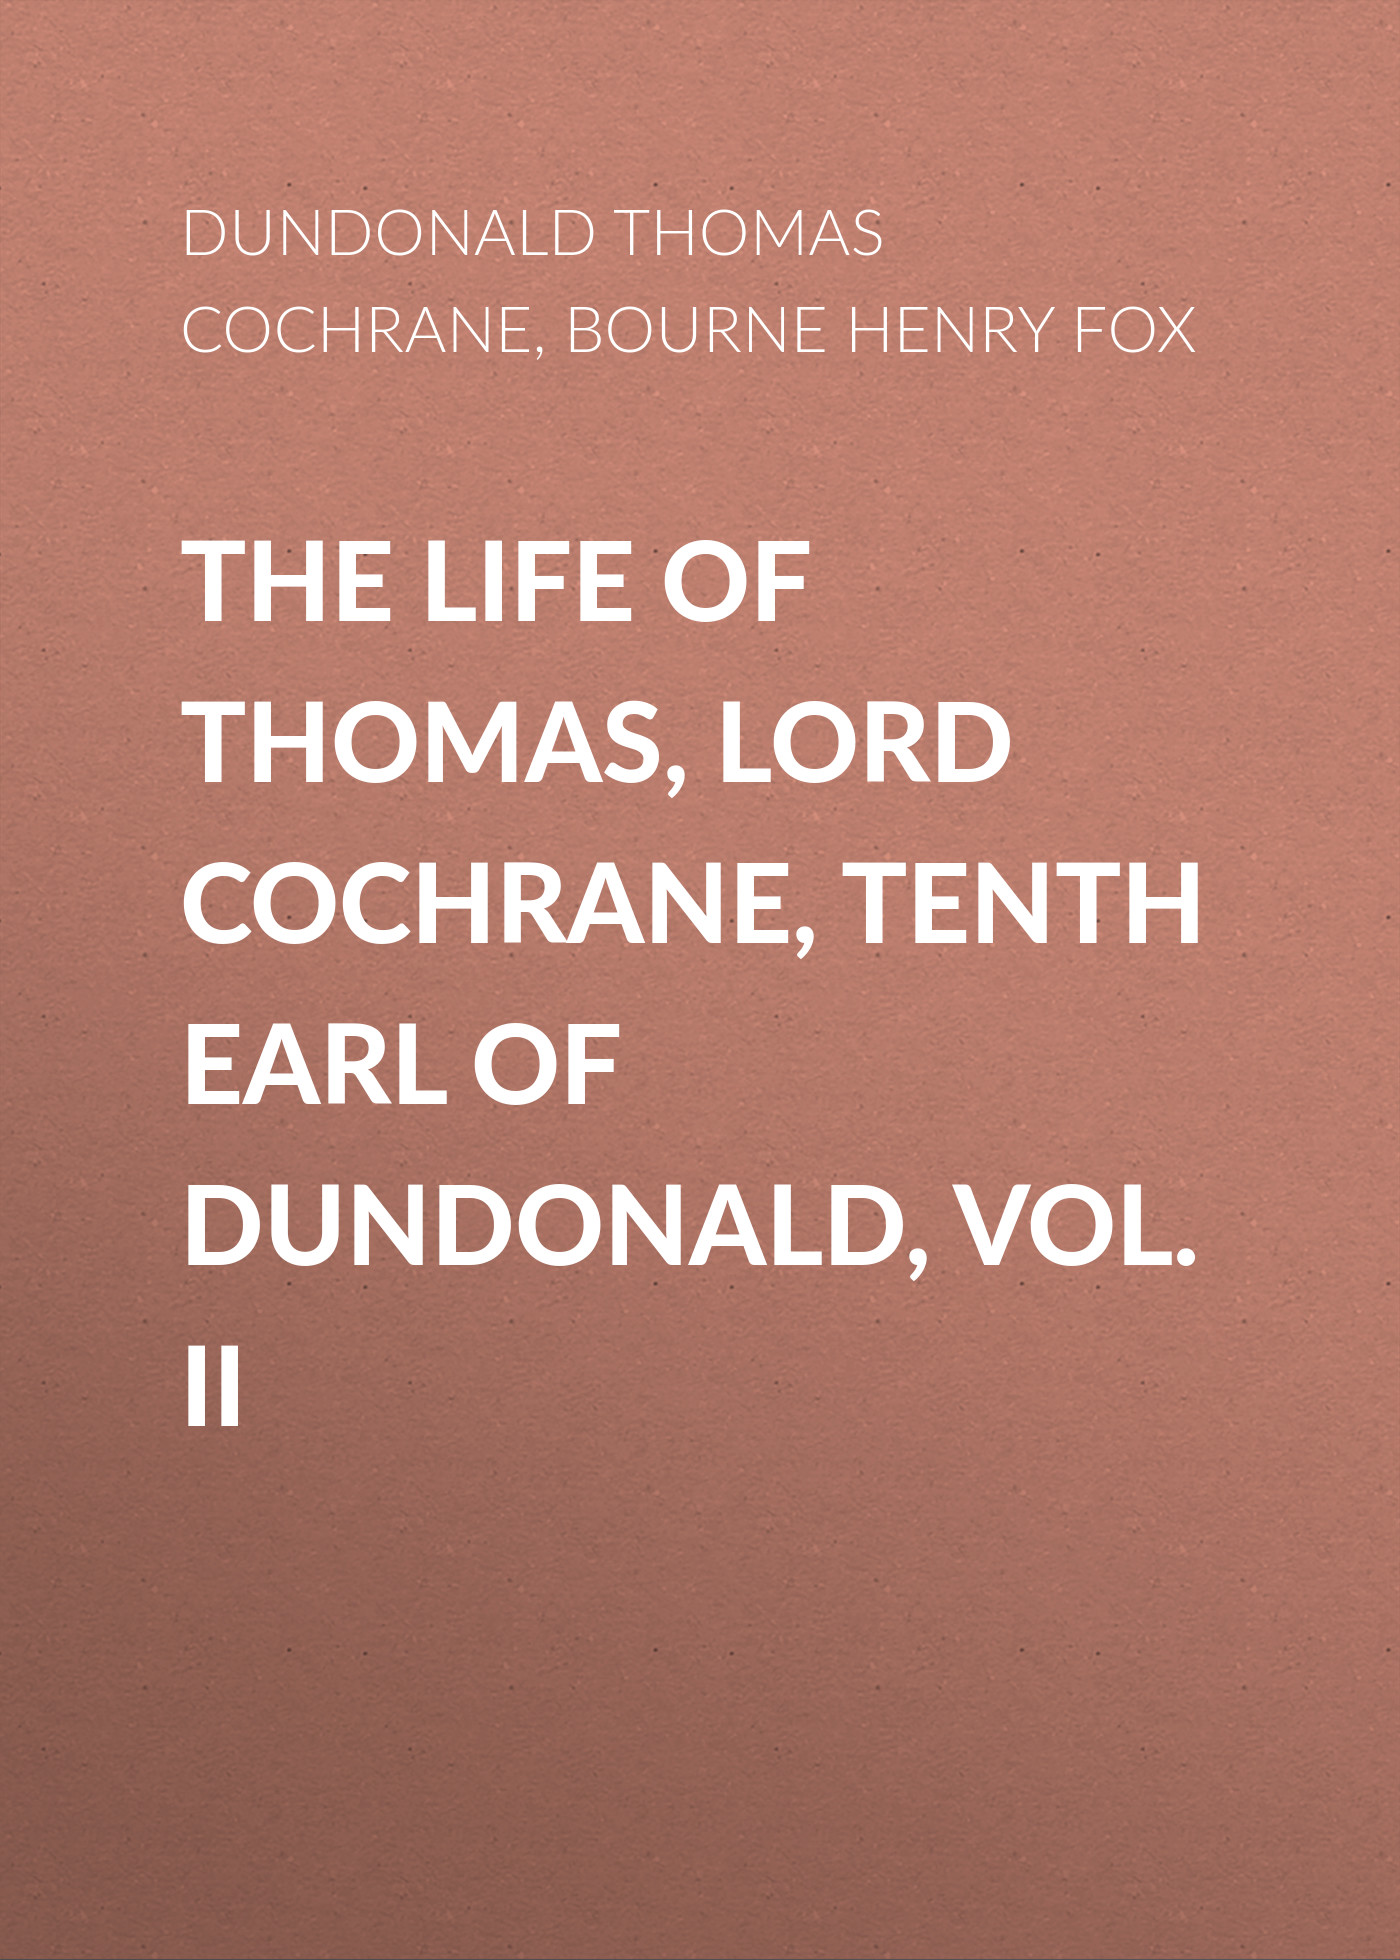 Bourne Henry Richard Fox The Life of Thomas, Lord Cochrane, Tenth Earl of Dundonald, Vol. II the dark earl